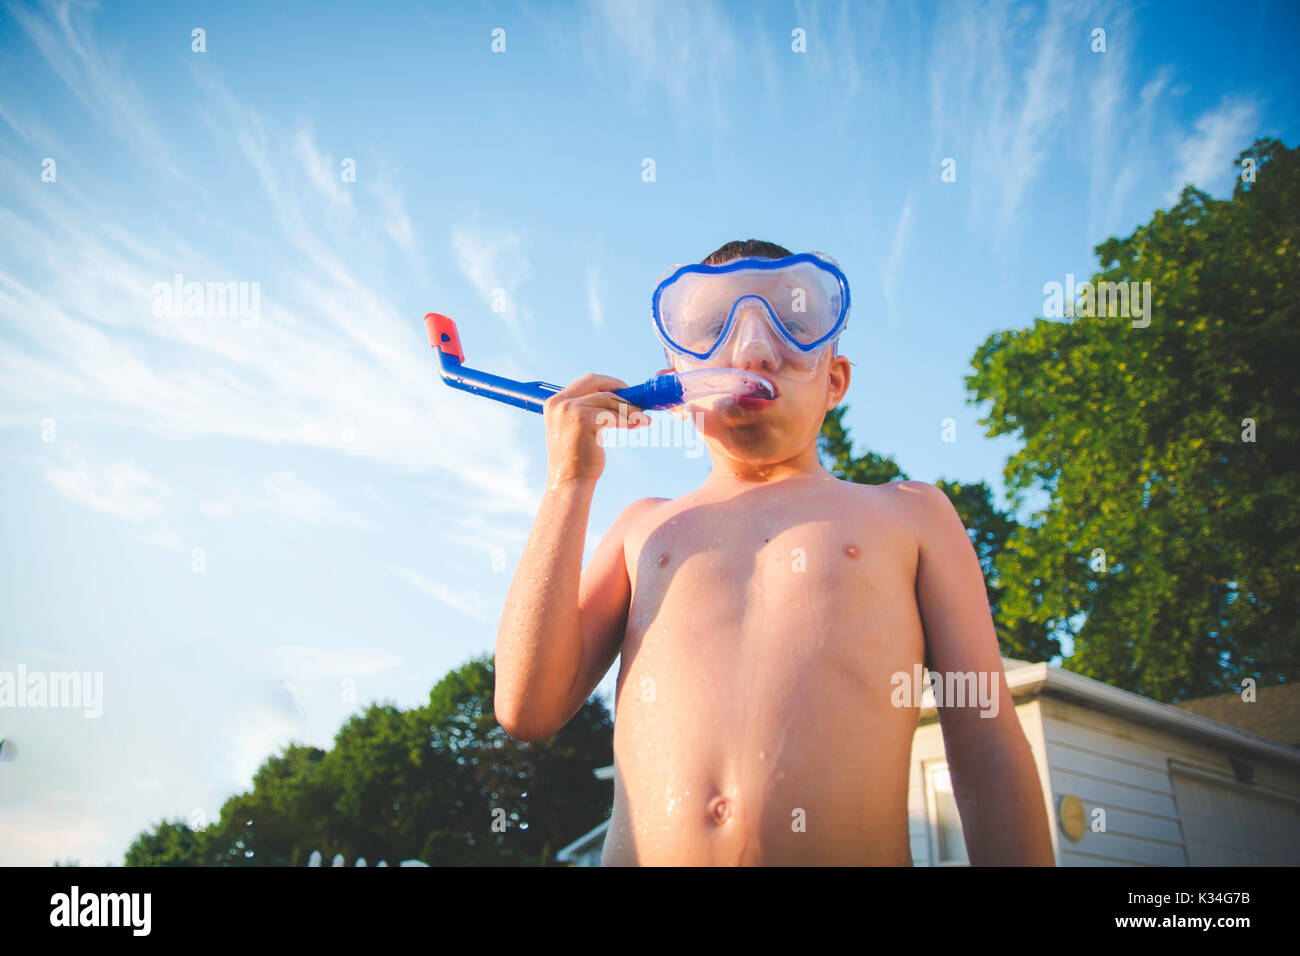 A boy wears a scuba mask against a blue sky with a few clouds. - Stock Image